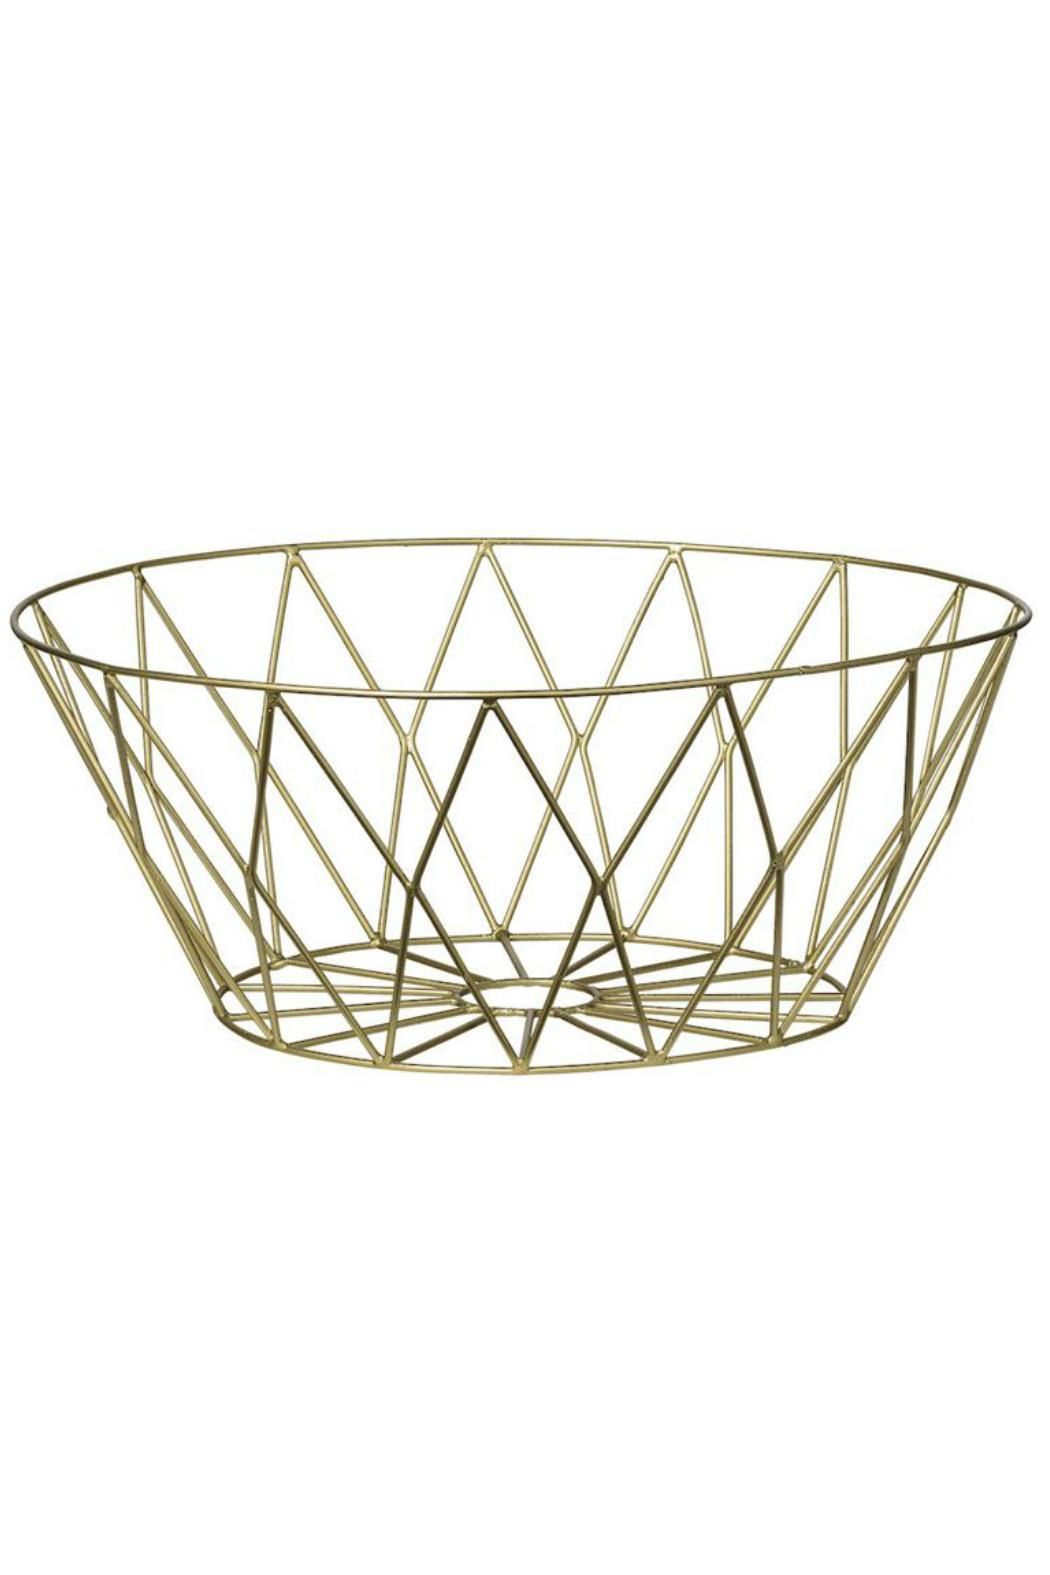 """Gold metal basket. Looks great empty or filled with your favorite fruit or veggies on your kitchen countertop. Also works on your cocktail table or entry table.  Measures: 9.75"""" Round x 4""""H  Gold Metal Basket by Bloomingville. Home & Gifts - Home Decor Montana"""